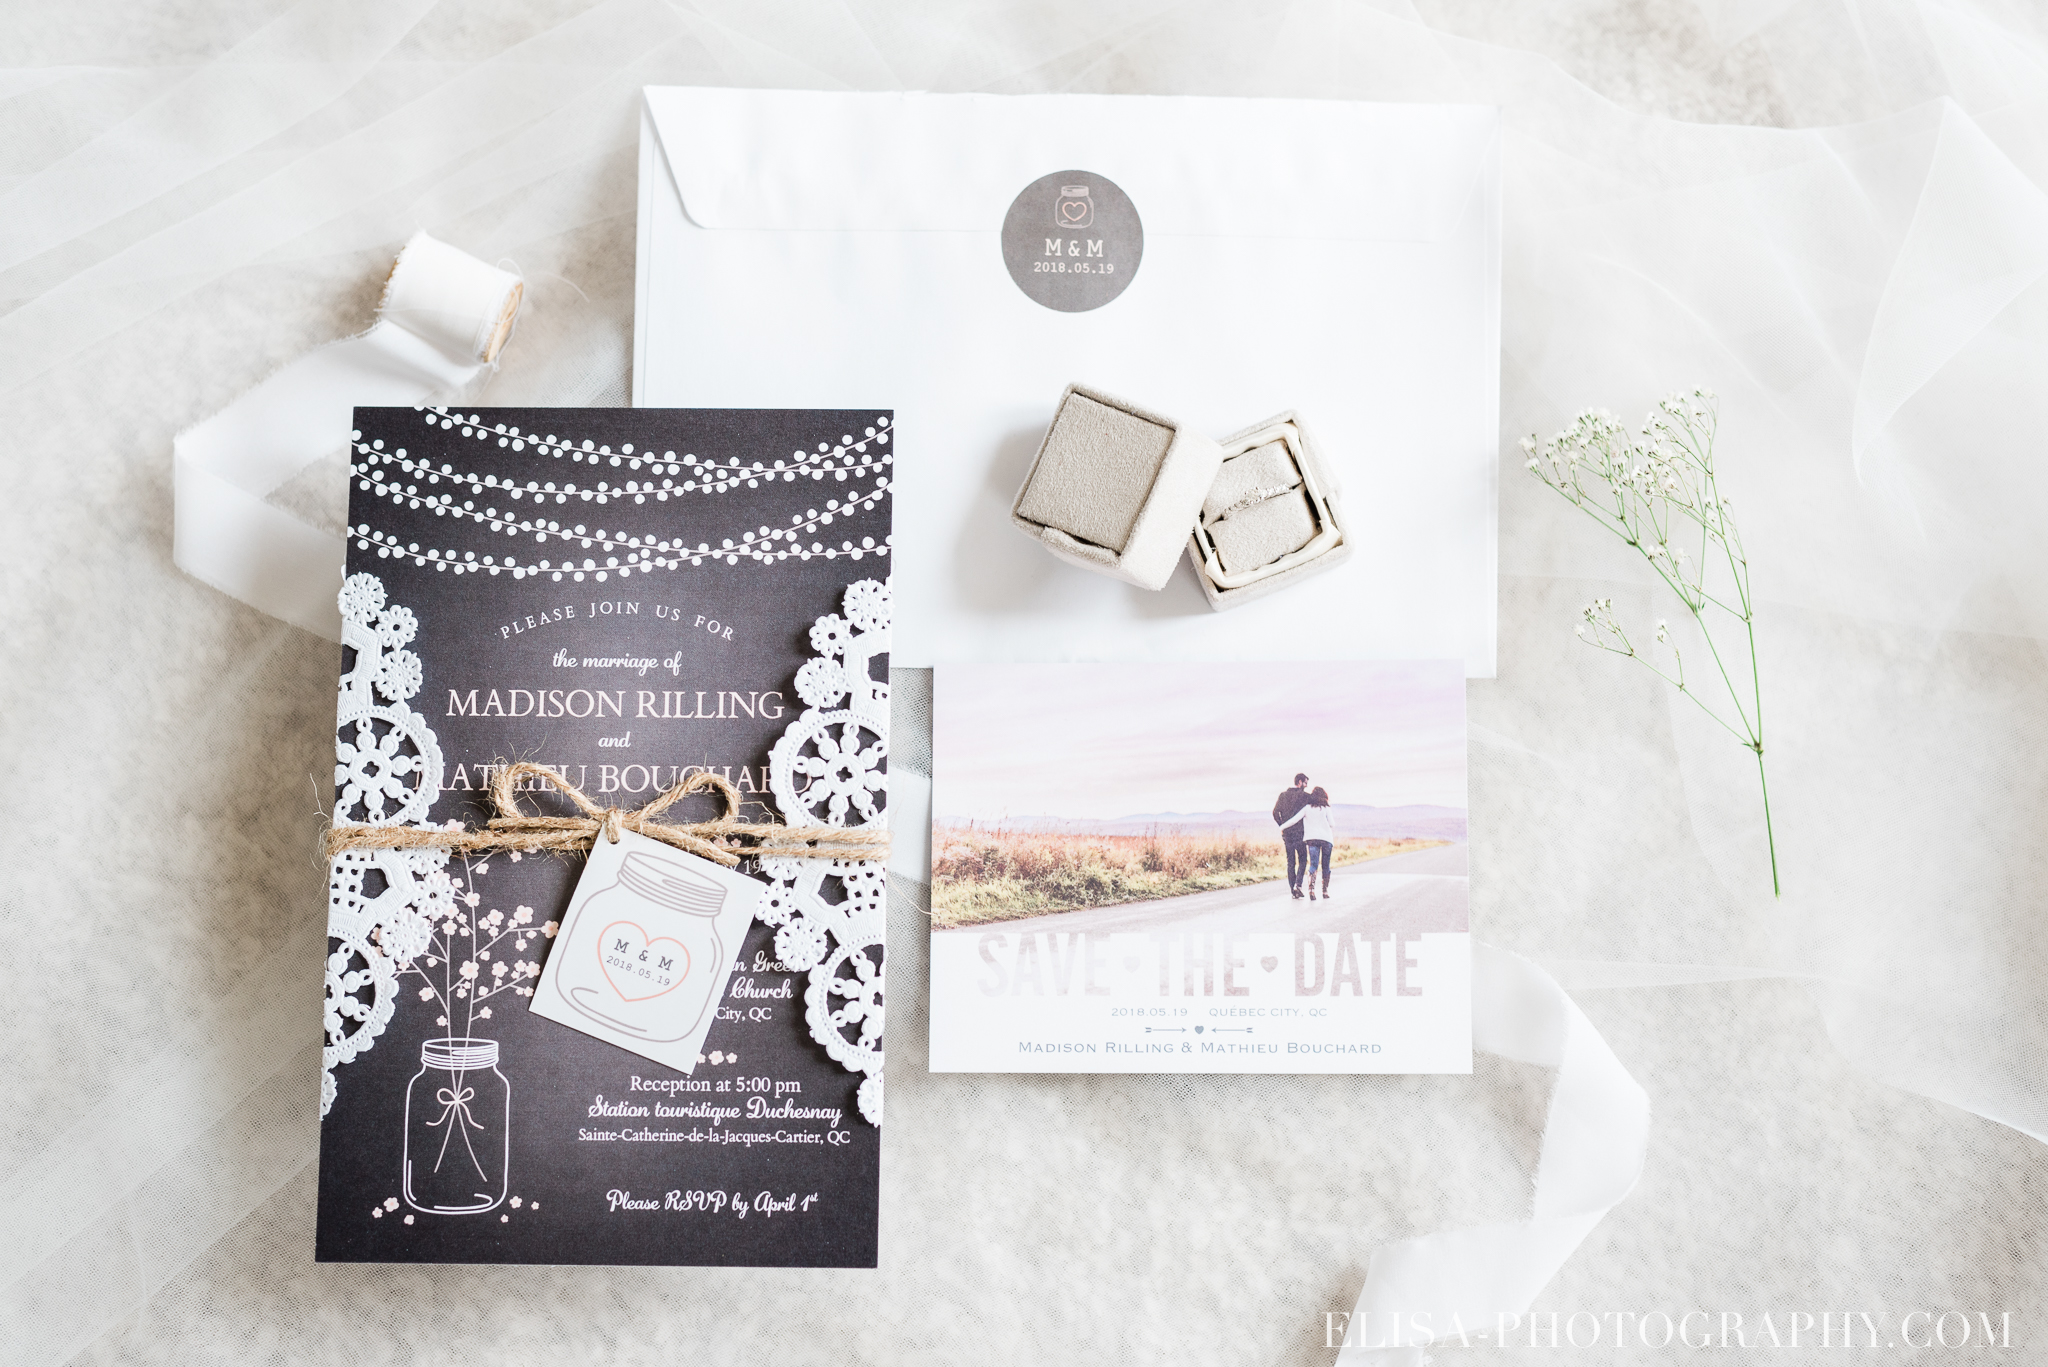 photo mariage ville de quebec duchesnay invitations bagues alliances 6356 - Galerie photos de mariage